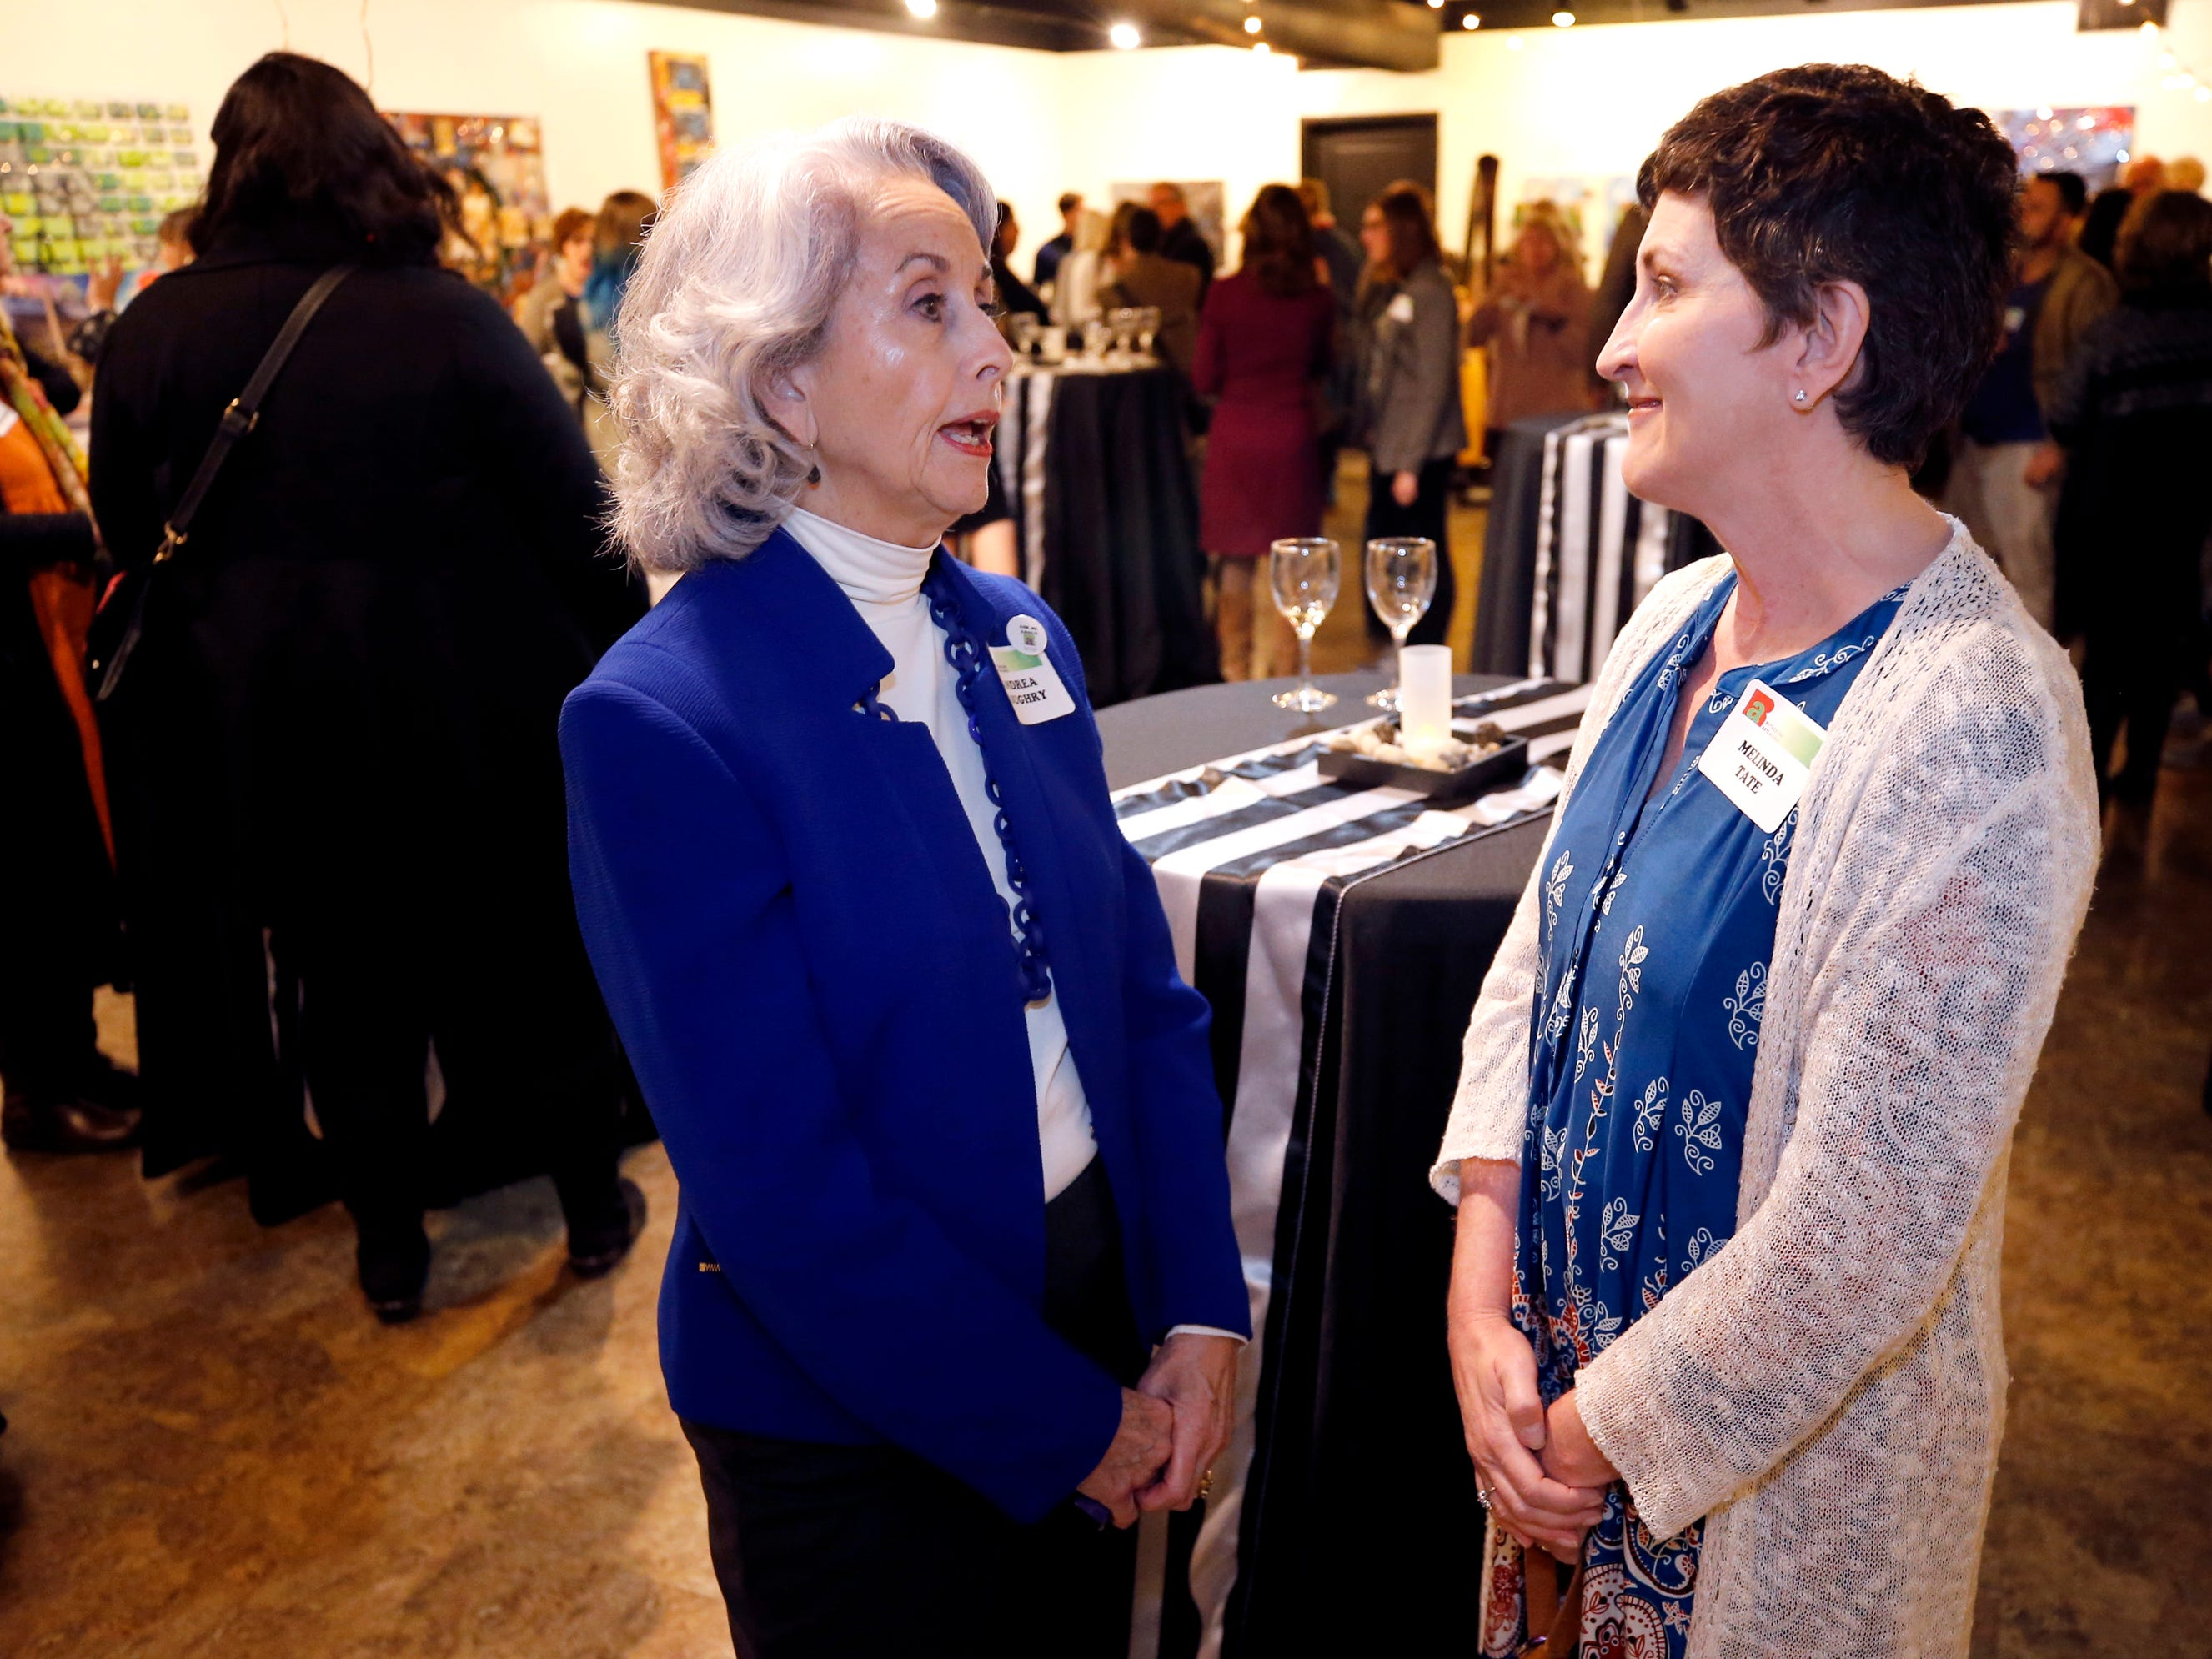 Andrea Loughry, left and Melinda Tate at an arts reception for Rutherford Arts Alliance held at the Center for the Arts on Wednesday Jan. 9, 2019.